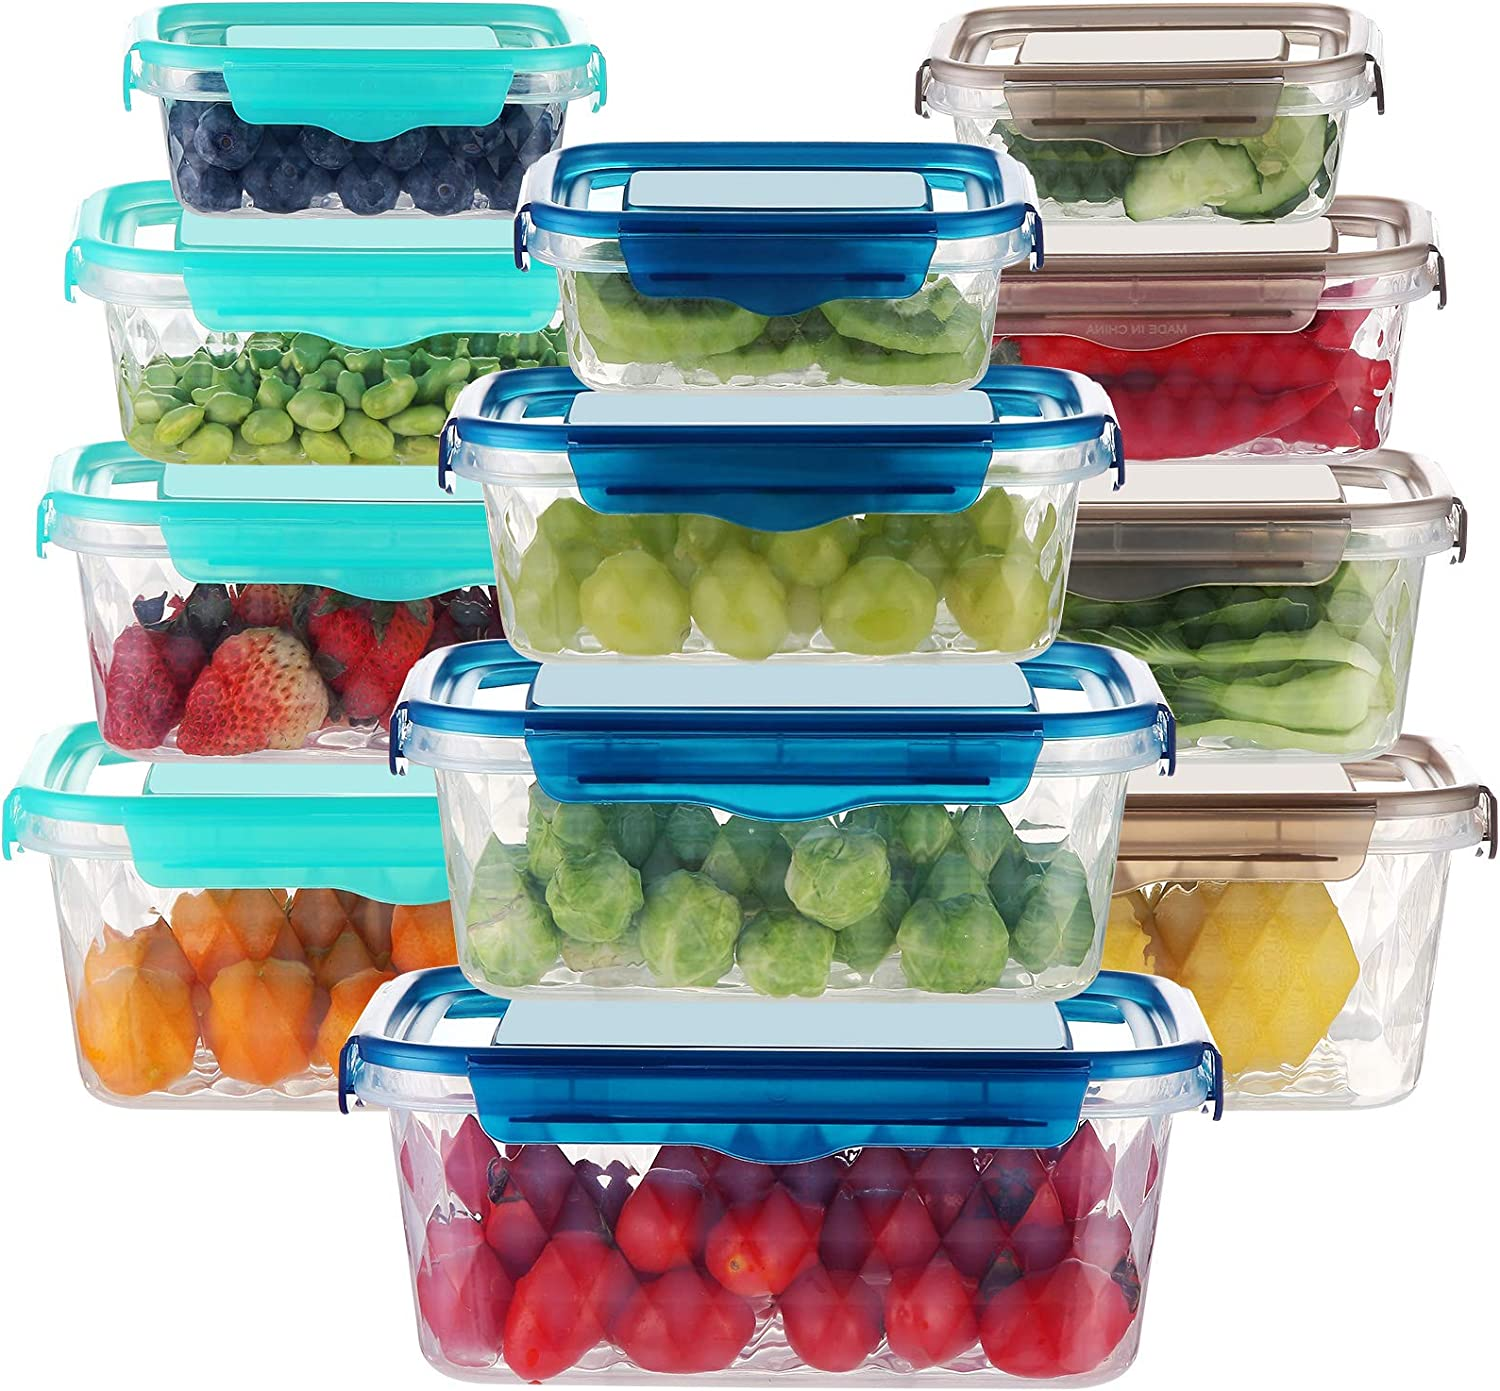 Food Storage Containers with Lids, DUSASA 12 PCS Plastic Storage Containers with Lids for Food, Leakproof Lunch Containers, Stackable Kitchen Storage Containers for Food BPA Free Containers Set